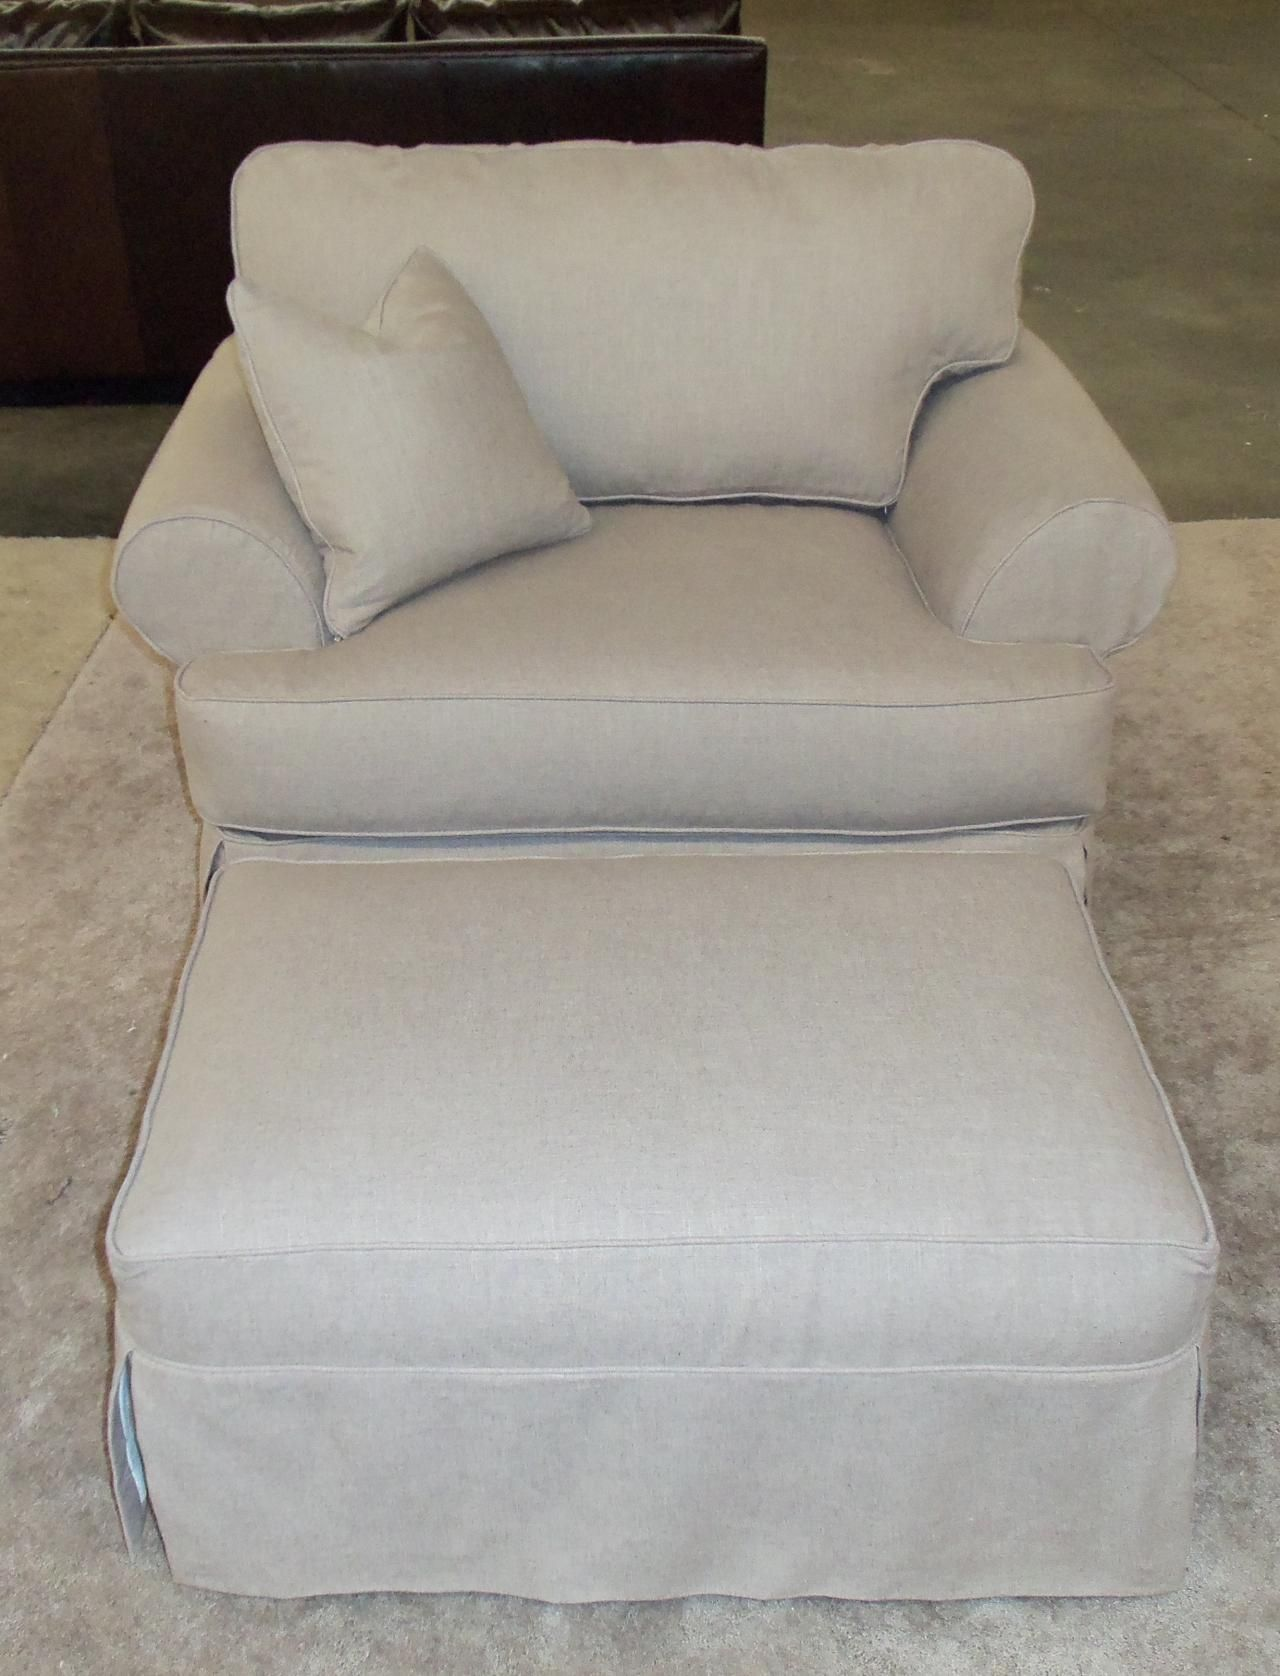 Chair And A Half With Ottoman Slipcover Slipcovers For Chairs Chair And A Half Chair And Ottoman Slipcover for chair and a half